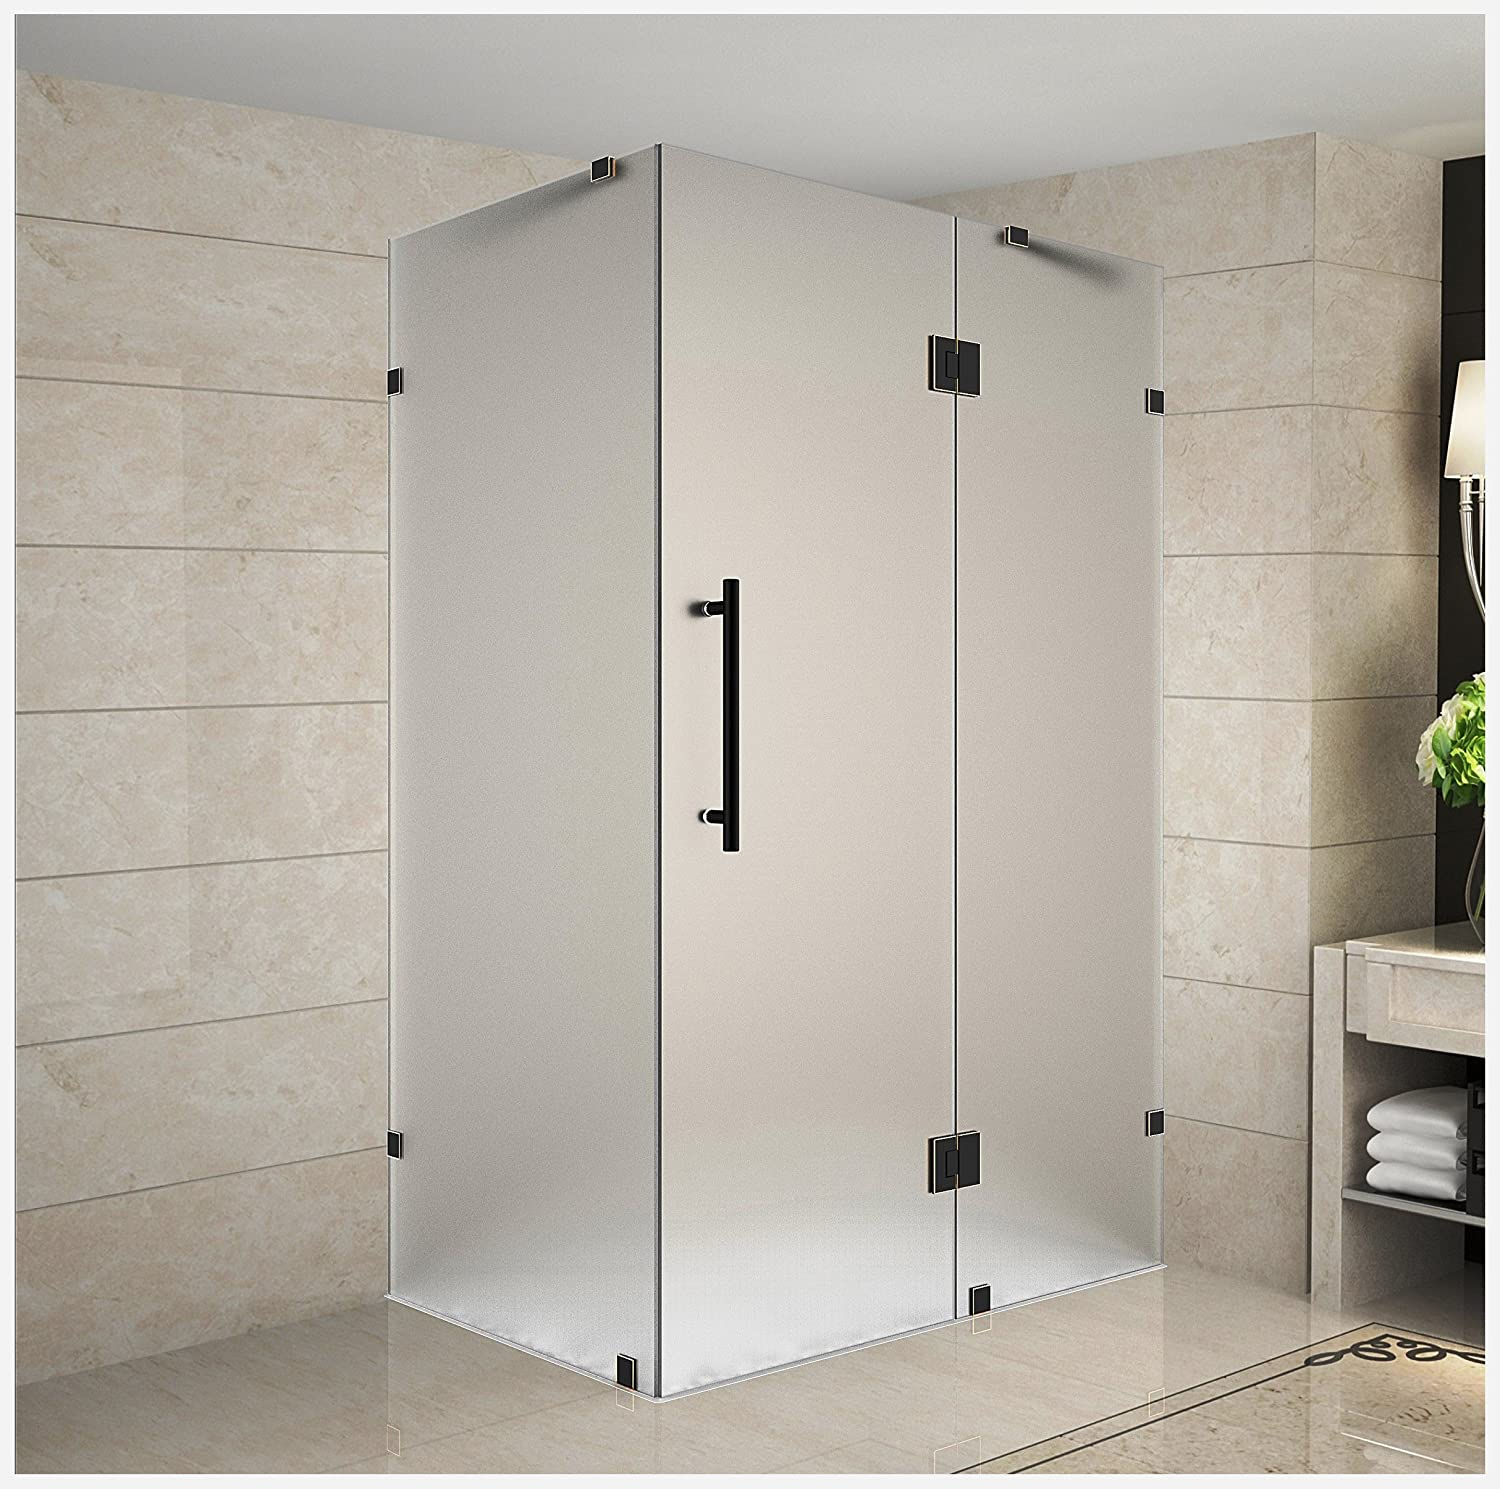 Aston Avalux 36 X 38 X 72 Completely Frameless Hinged Shower Enclosure In Frosted Glass Stainless Steel Amazon Com